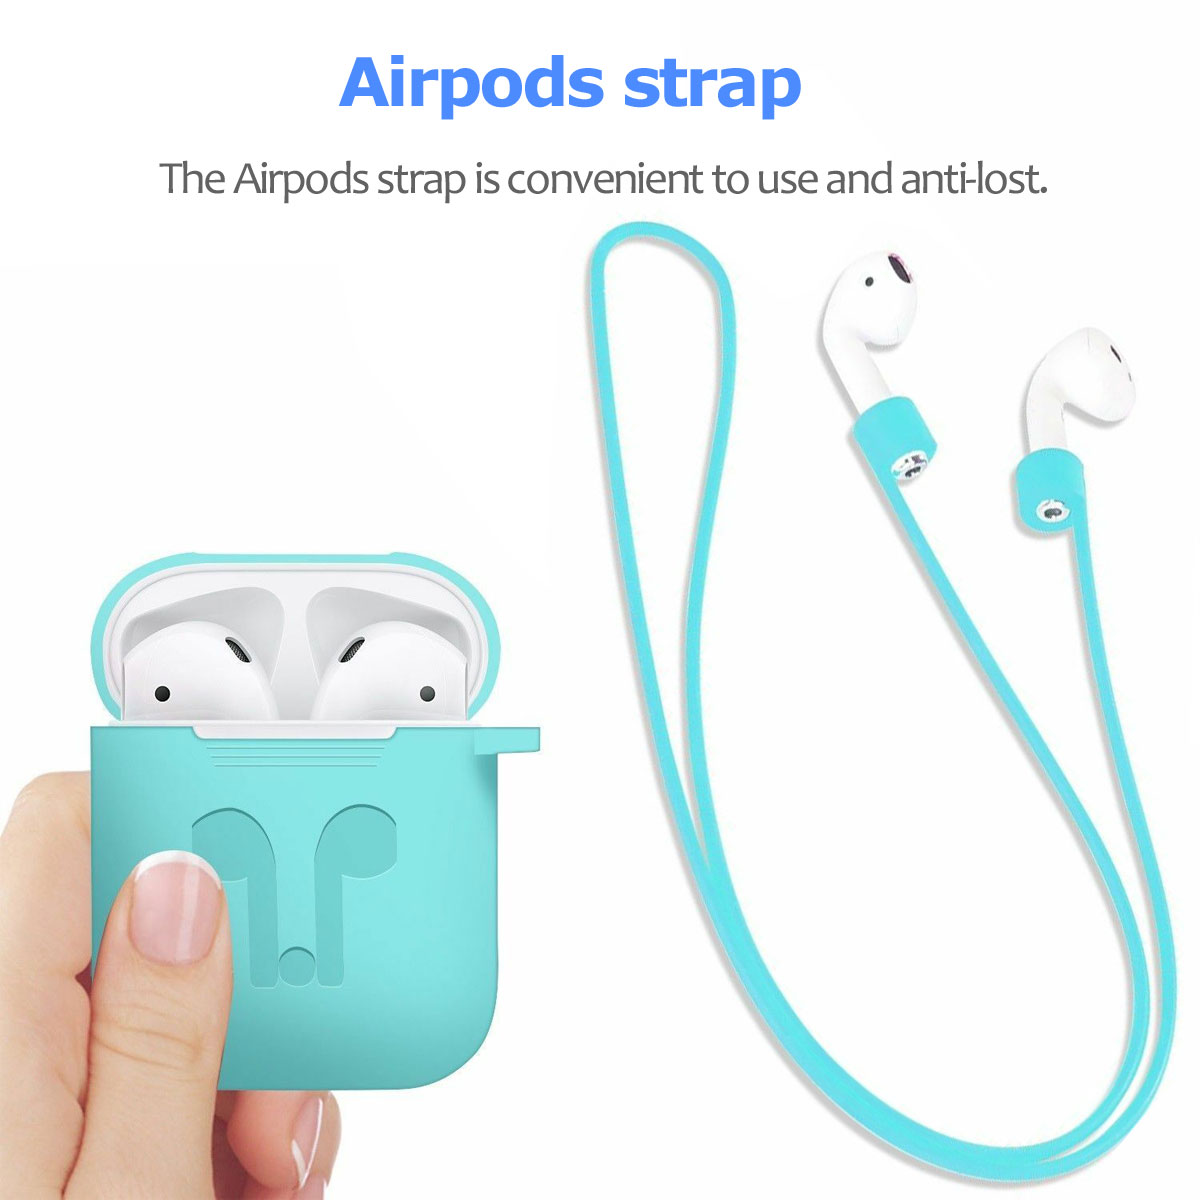 Silicone-Ruggged-Case-Cover-Earbuds-For-Apple-AirPods-2nd-Gen-Accessories-2019 thumbnail 45